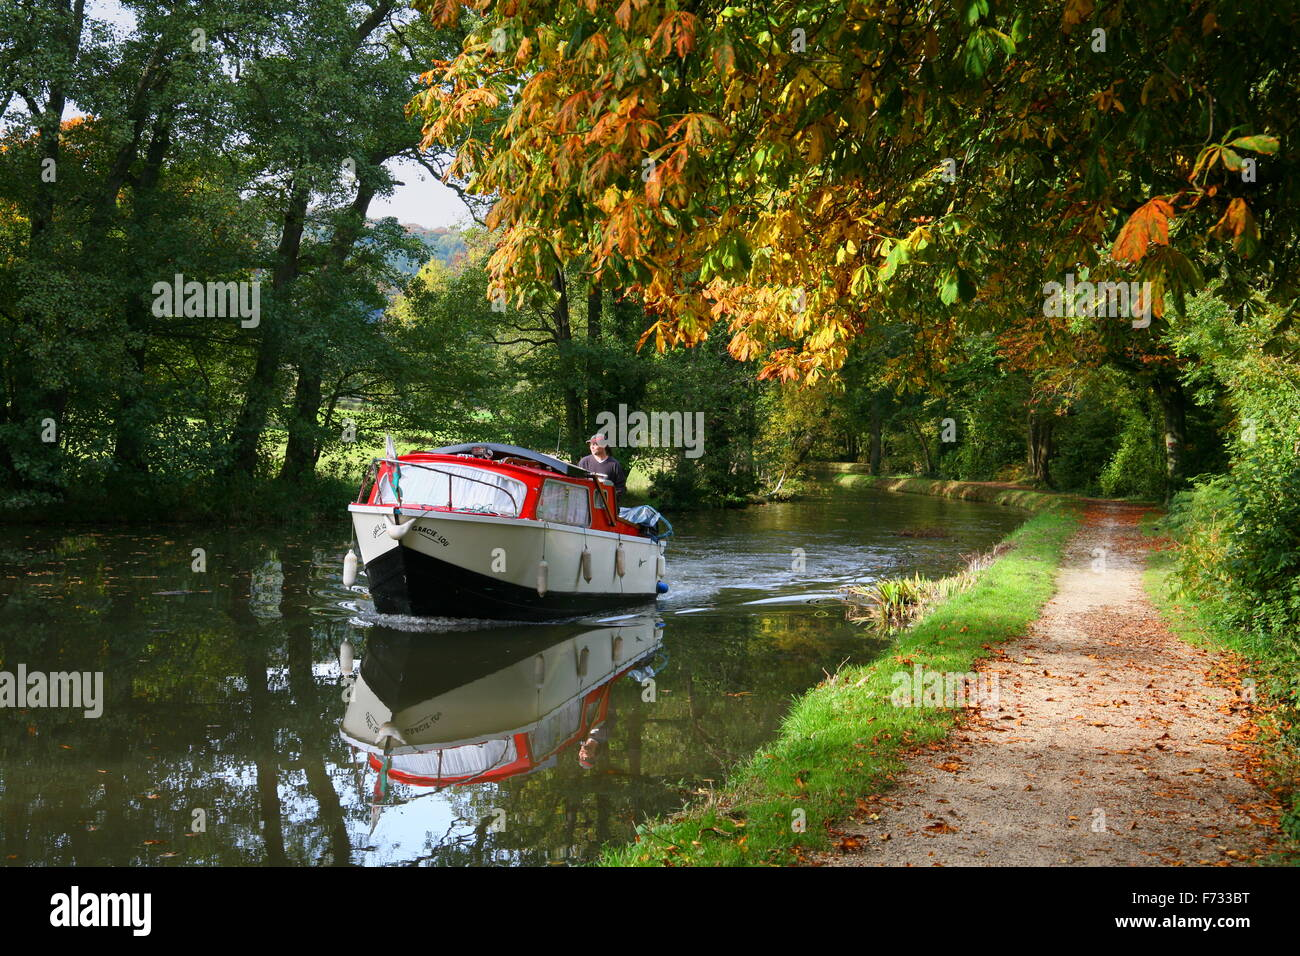 Boating on the the calm water of the Monmouthshire and Brecon Canal in Autumn. - Stock Image